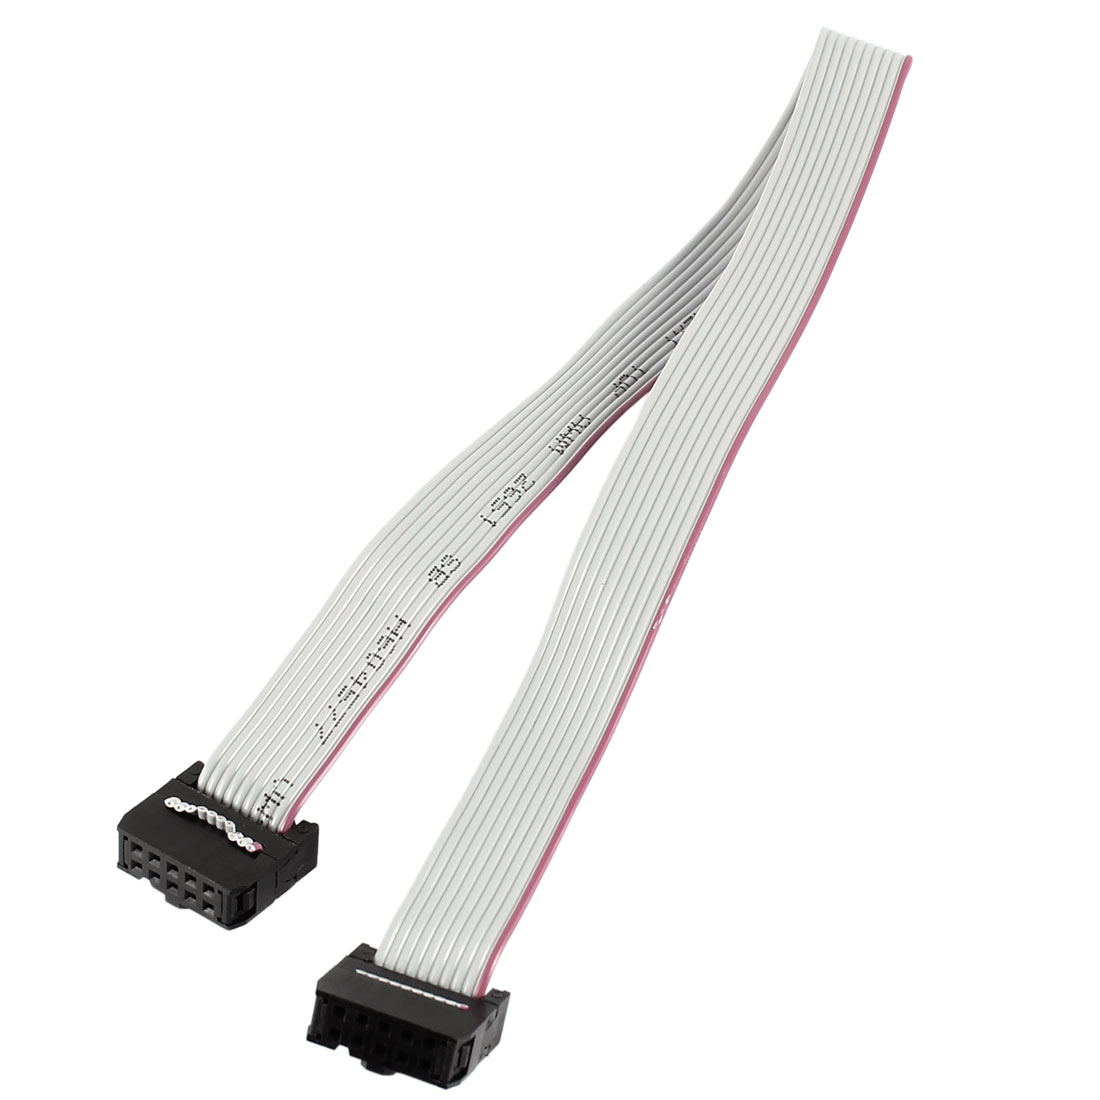 Black Gray 2.54mm Pitch 10Pin F/F IDC Connector Flat Ribbon Cable 30cm 12-inch